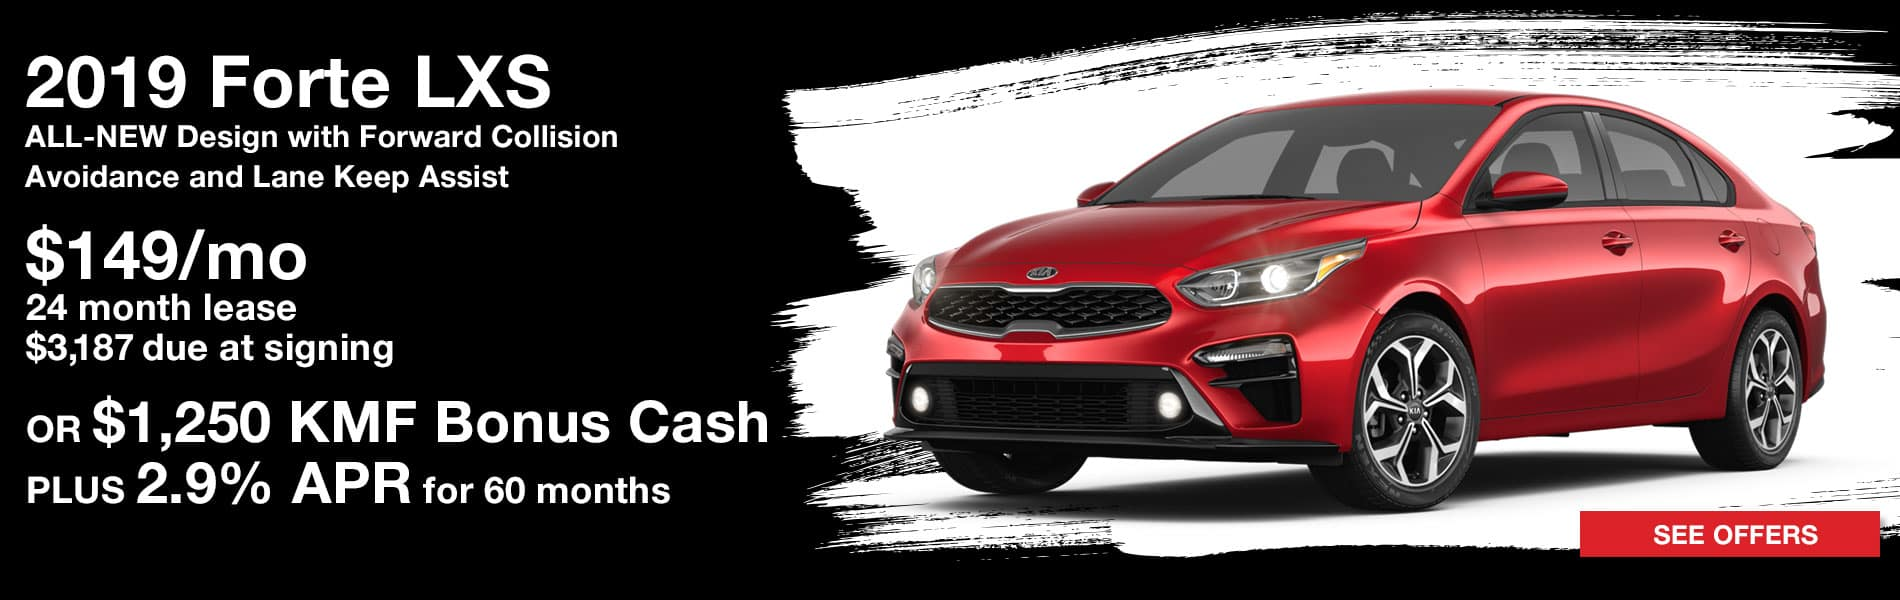 Lease a 2019 Forte LXS for $149 per month with $3,187 due at signing